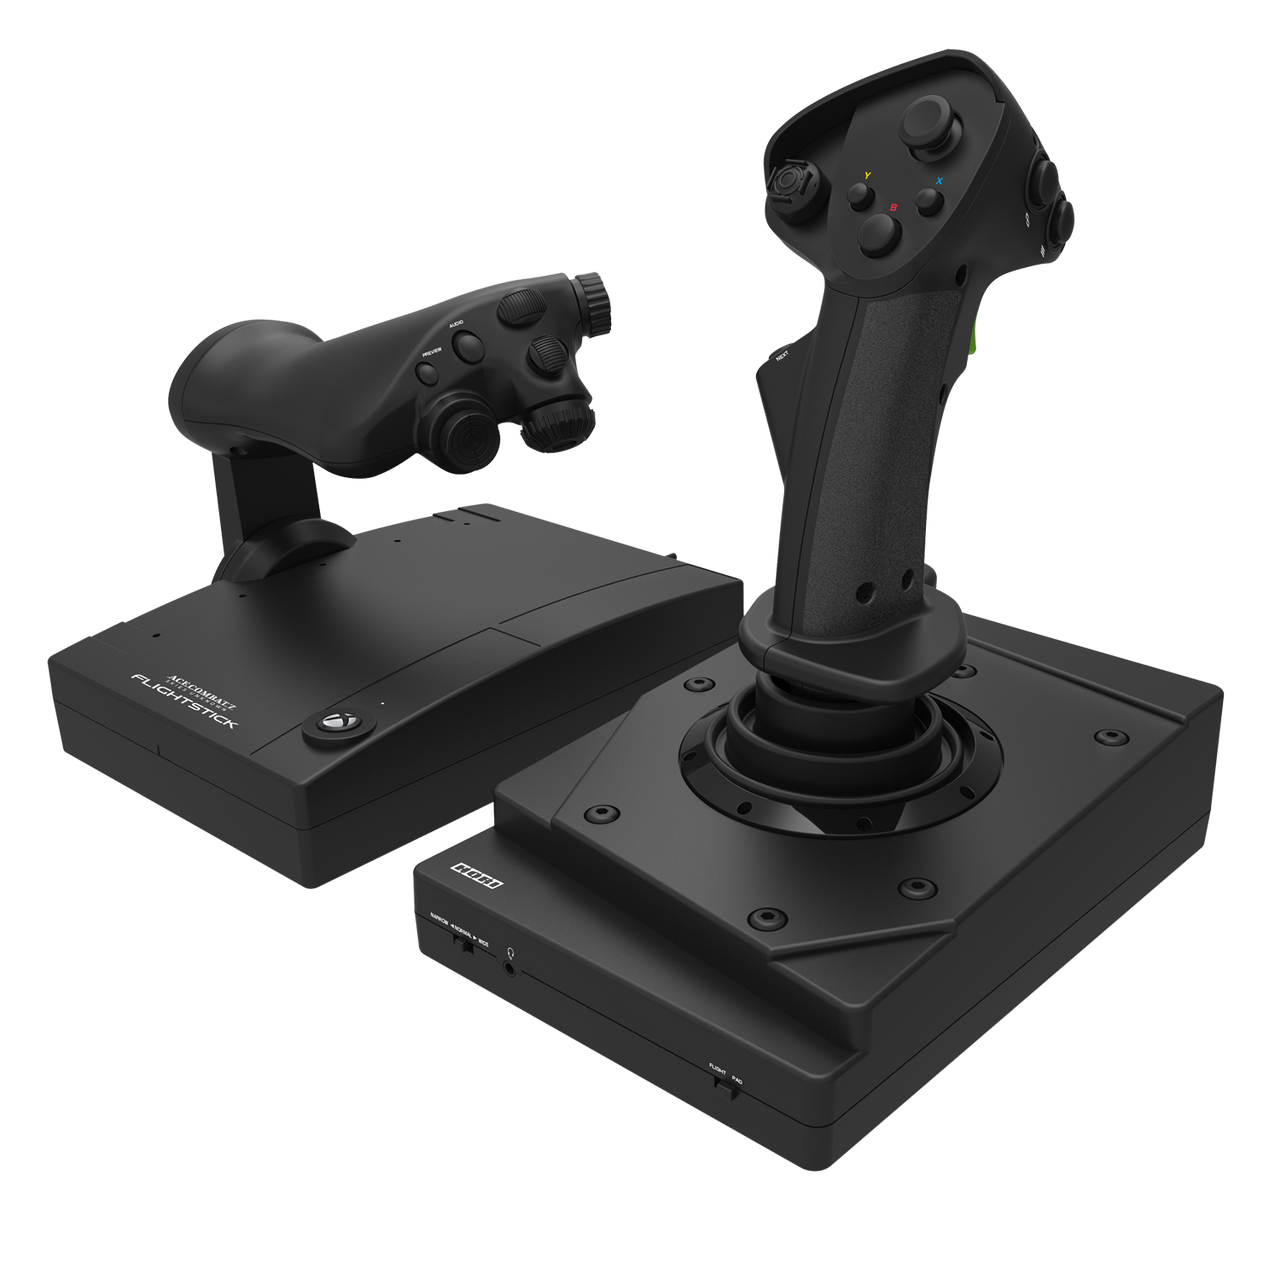 Ace Combat 7 HOTAS Flight Stick for Xbox One